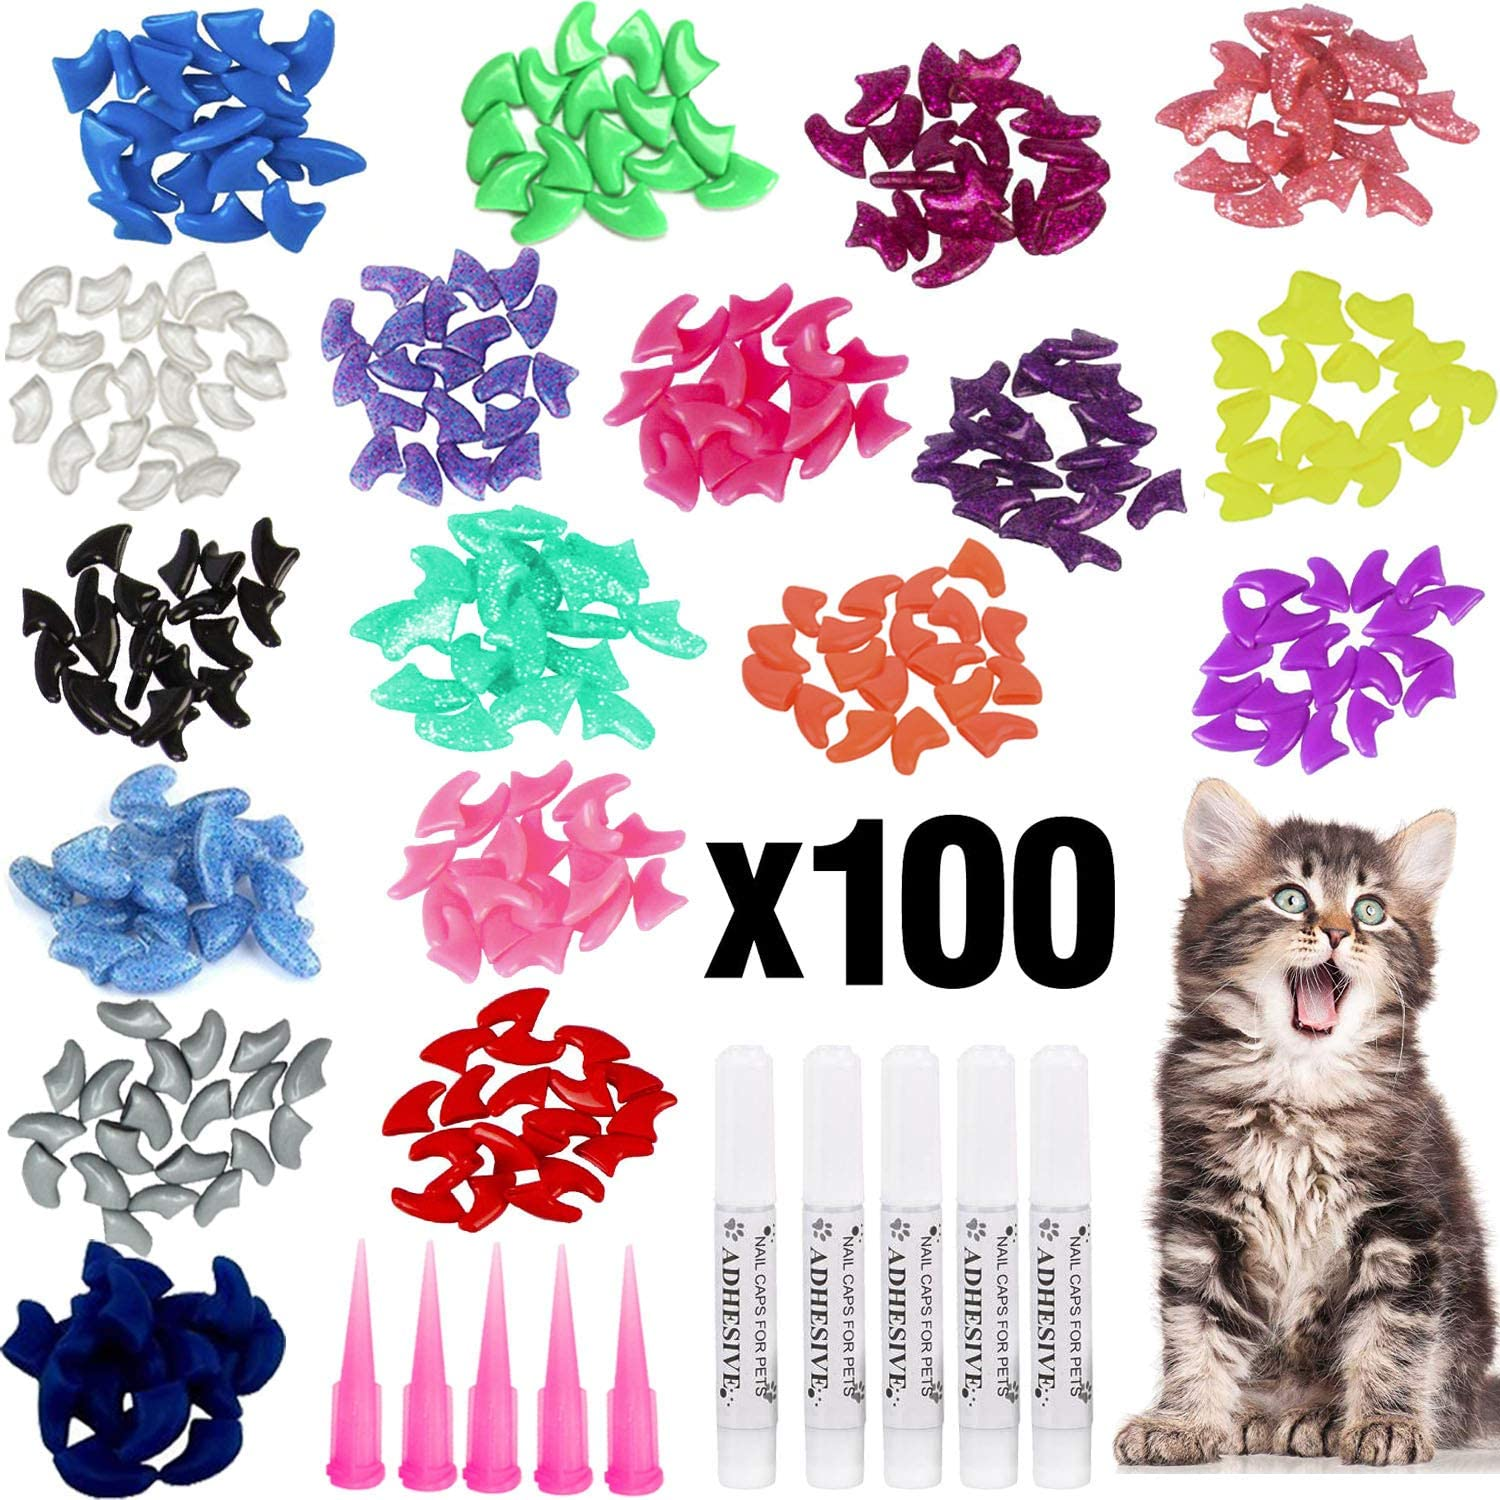 VICTHY 100pcs Cat Nail Caps, Colorful Pet Cat Soft Claws Nail Covers for Cat Claws with Glue and Applicators, 10 Colors/Set